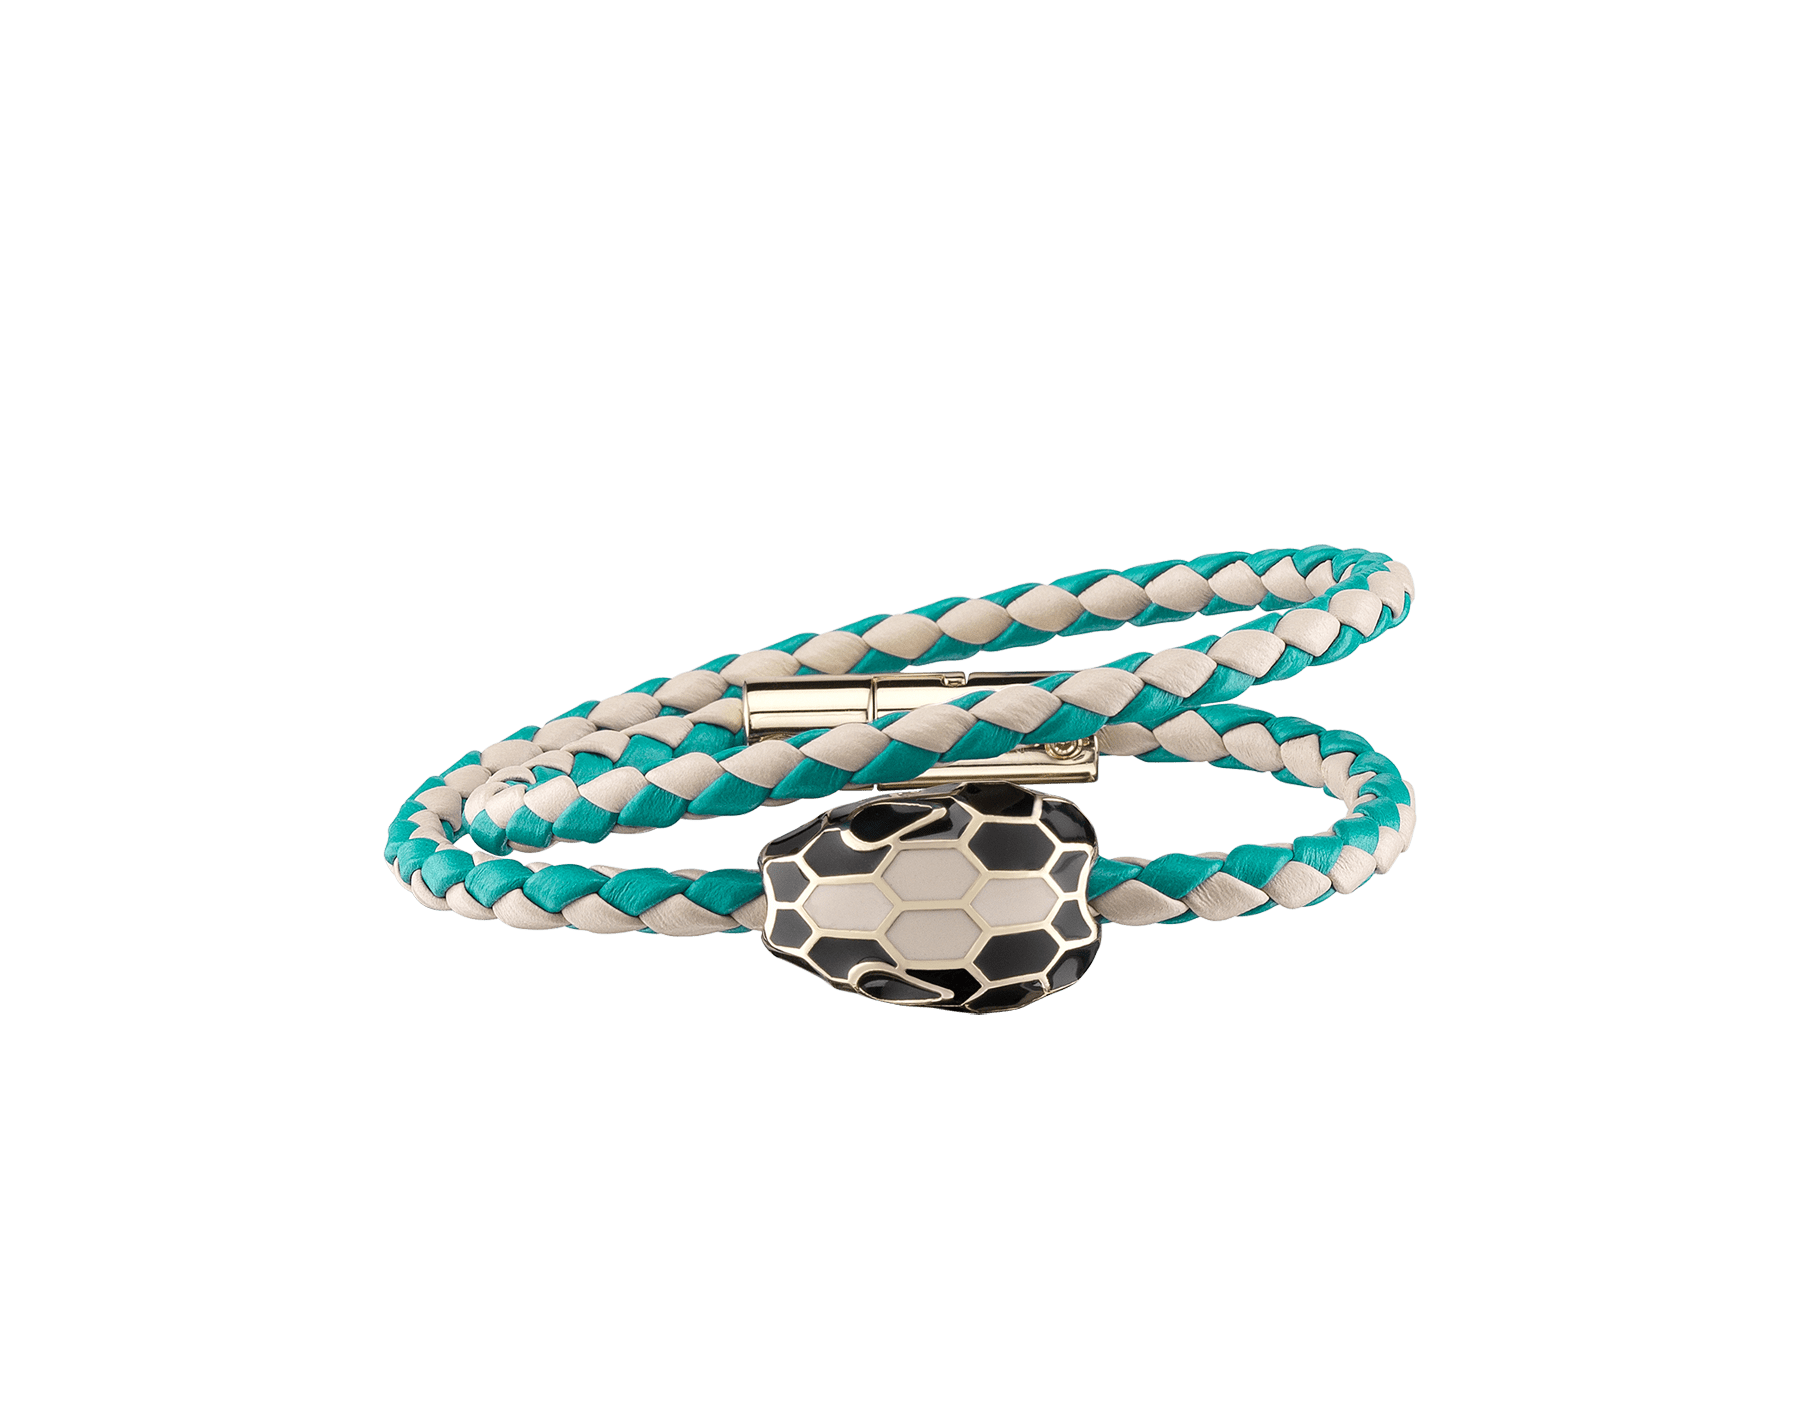 Serpenti Forevermulti-coiled braid bracelet in milky opal and tropical tourquoise woven calf leather with an iconic snakehead décor in black and milky opal enamel. SerpDoubleBraid-WCL-MOTT image 1